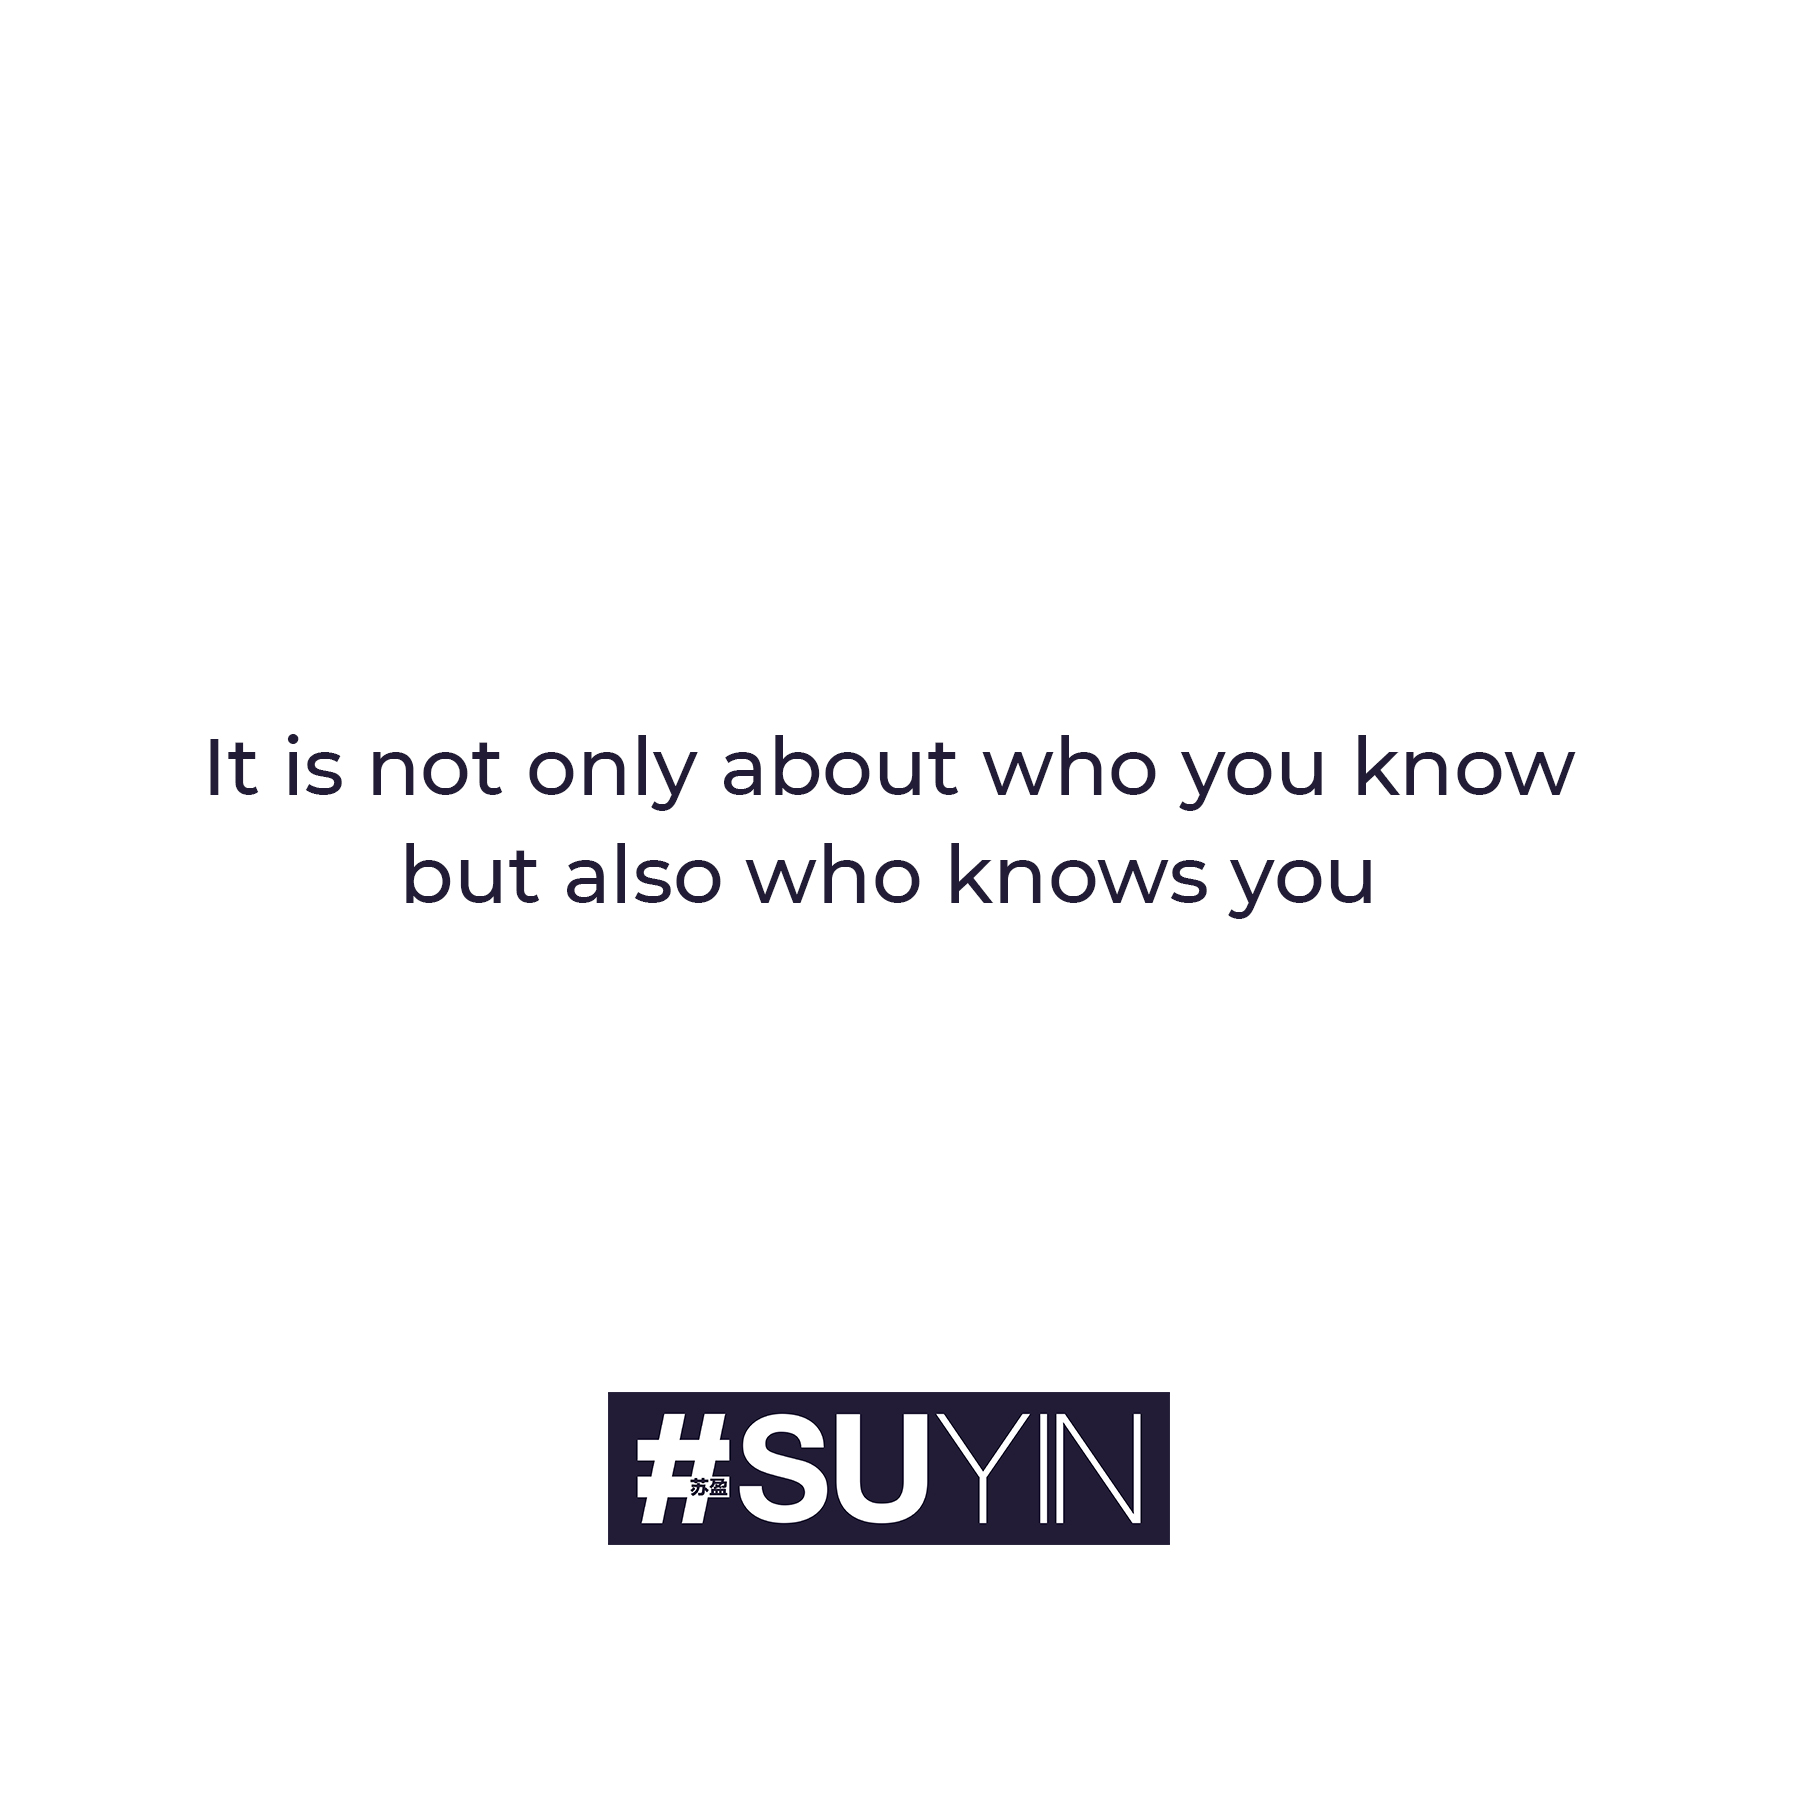 it is not only about who you know but also who knows you